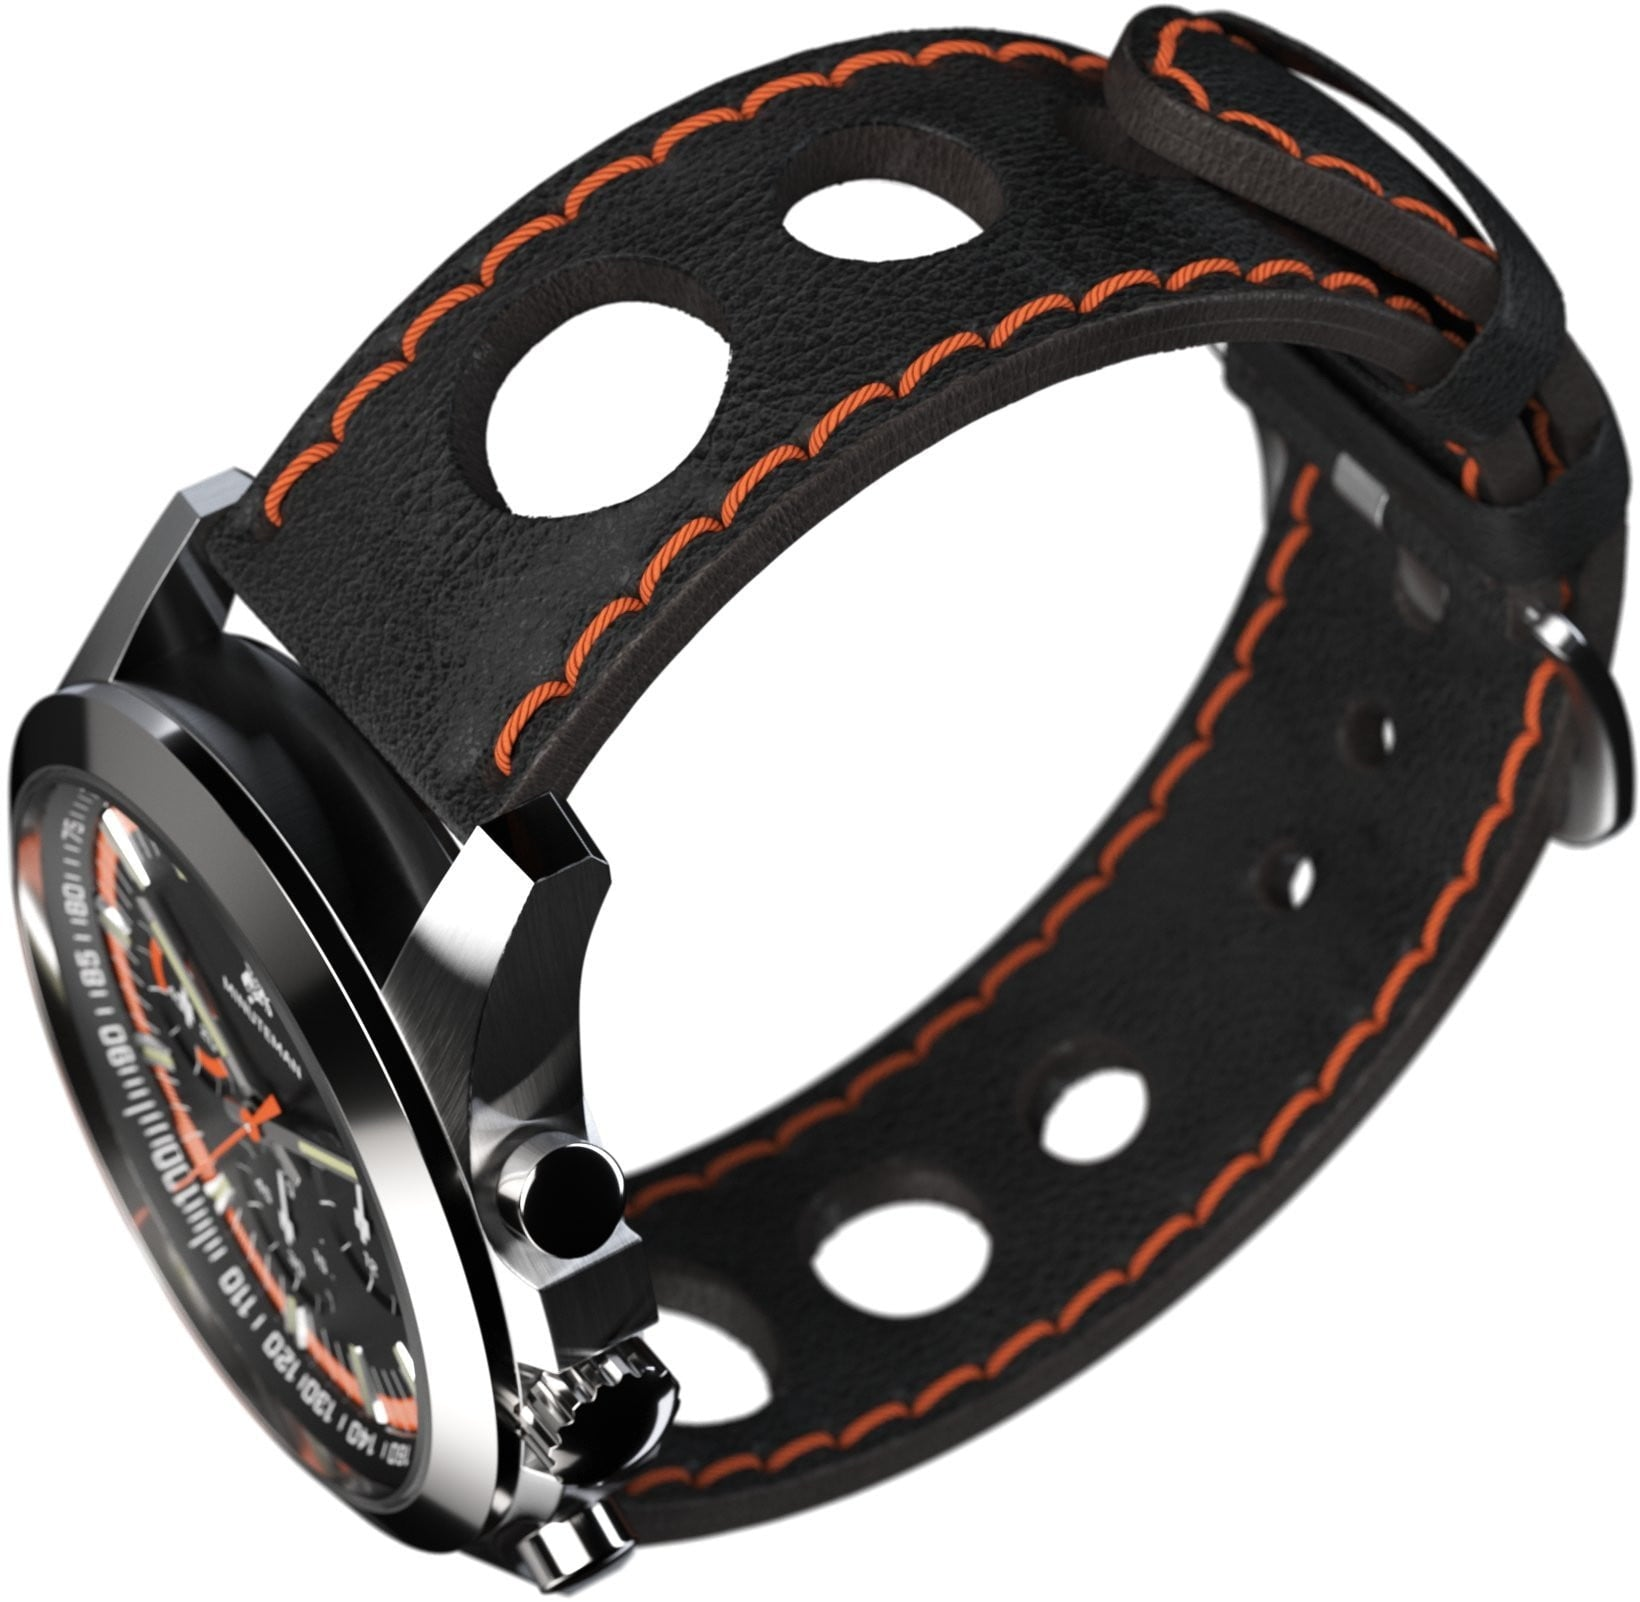 Minuteman Parker Chronograph Watch Black Leather Strap Black/Orange Dial Brushed (Pre Order) - minutemanwatches